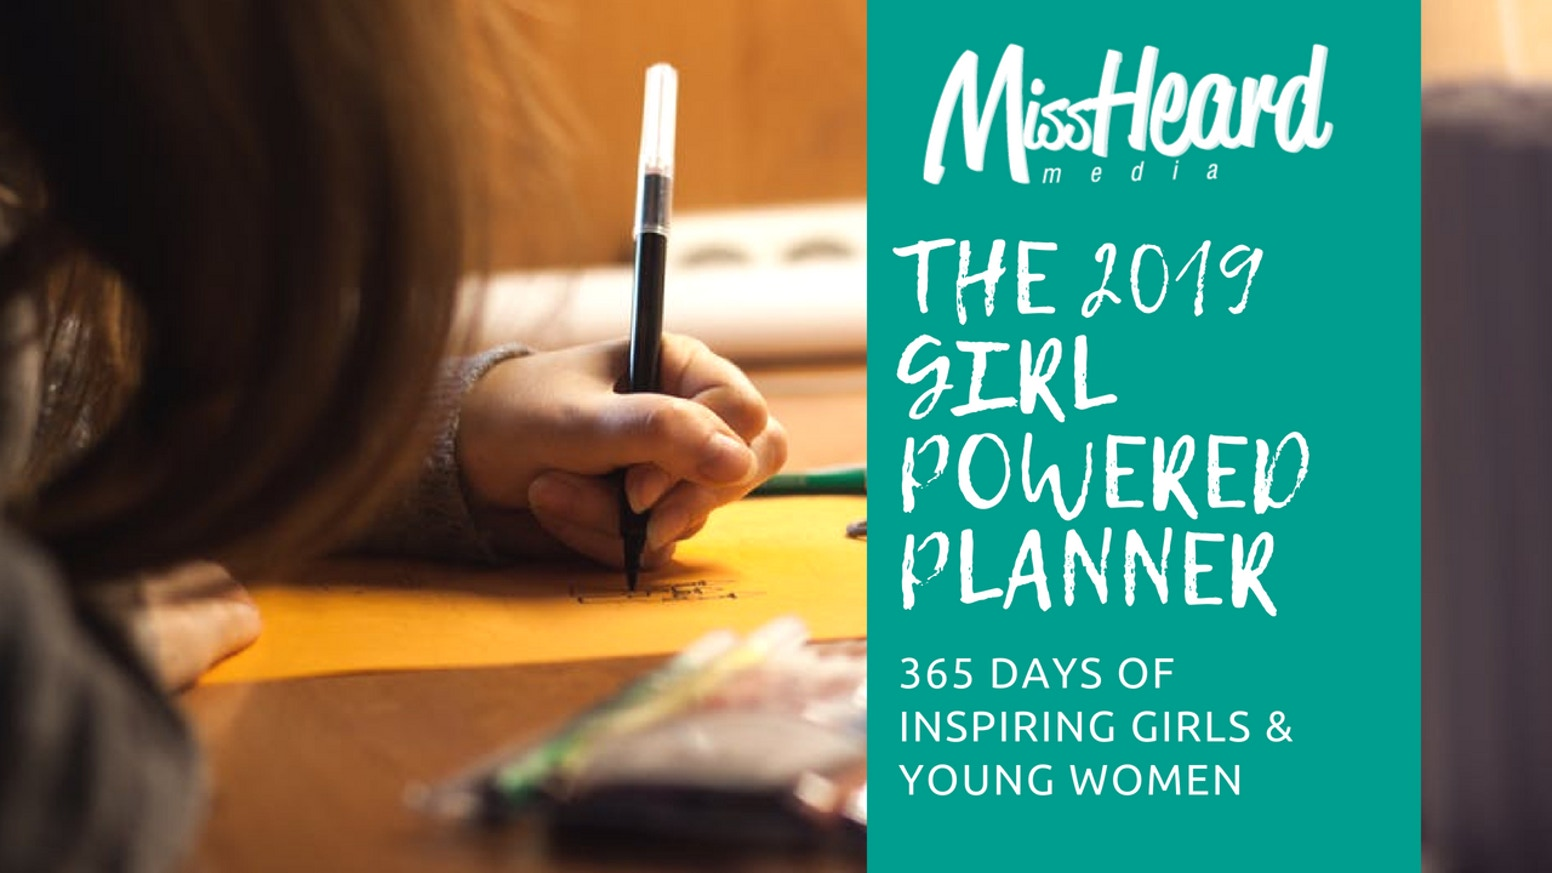 A girl-powered planner to inspire young women all year long, because girls' history is American history